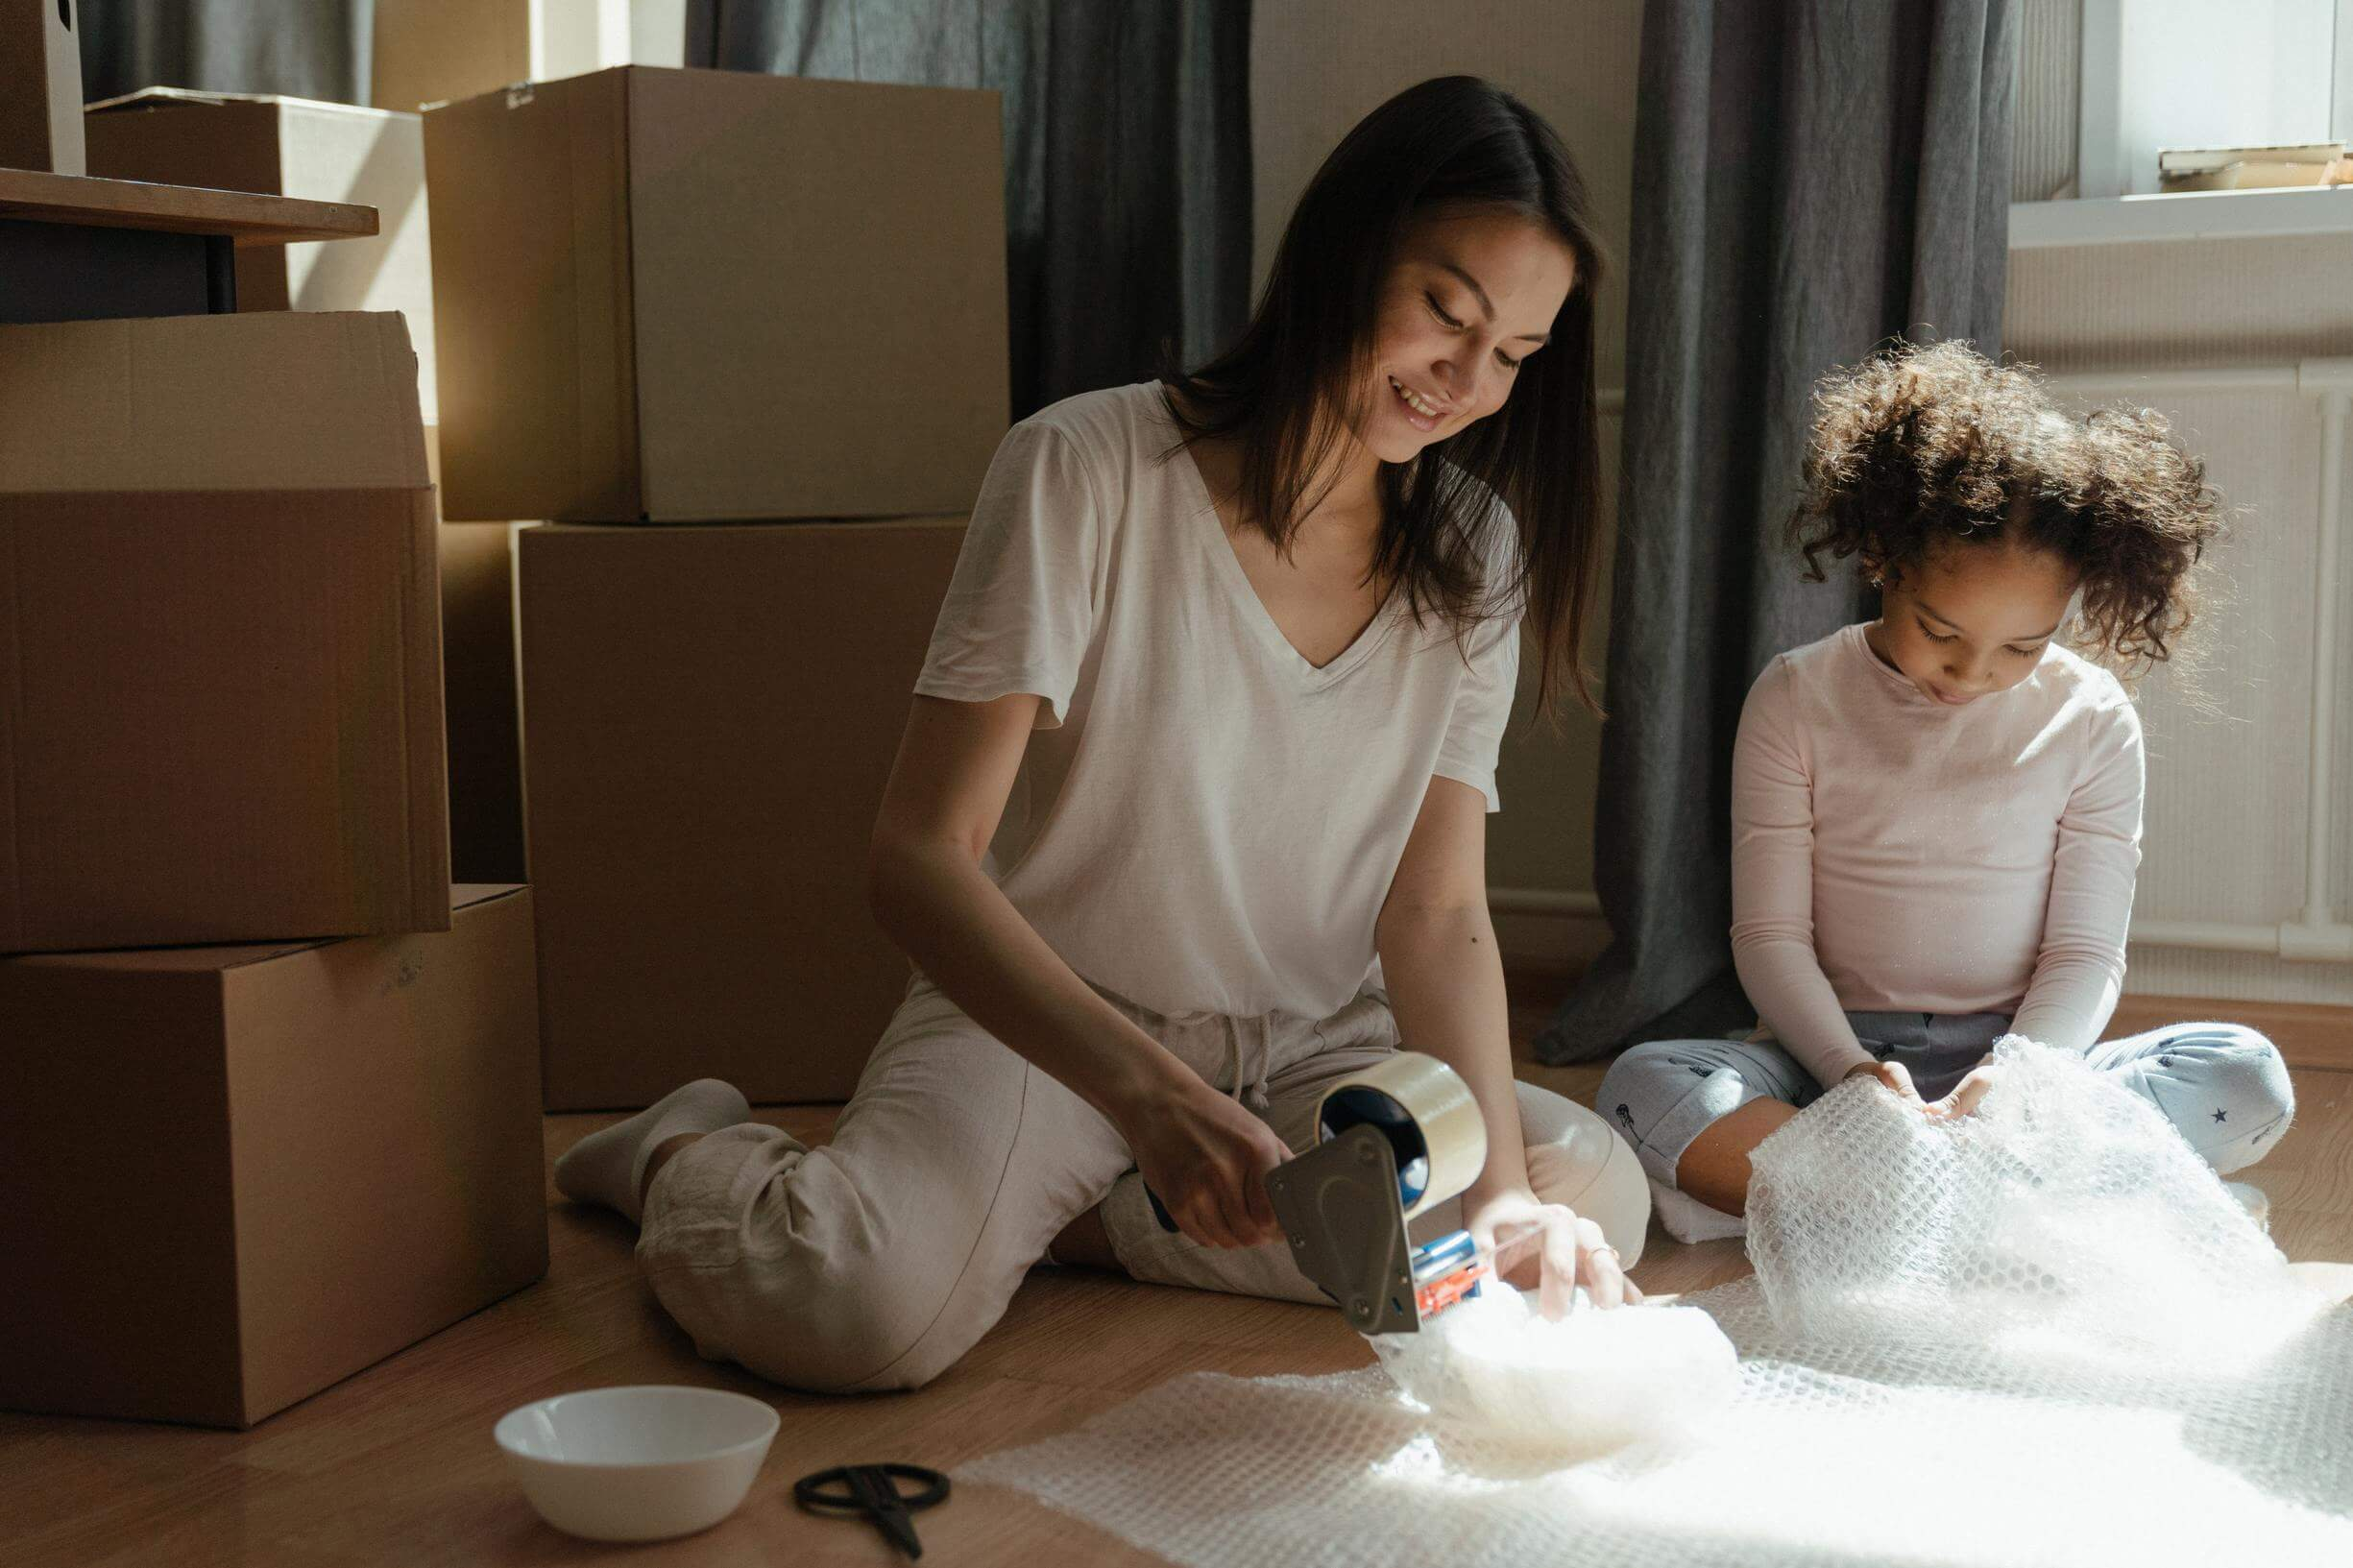 A woman and a child using bubble wrap